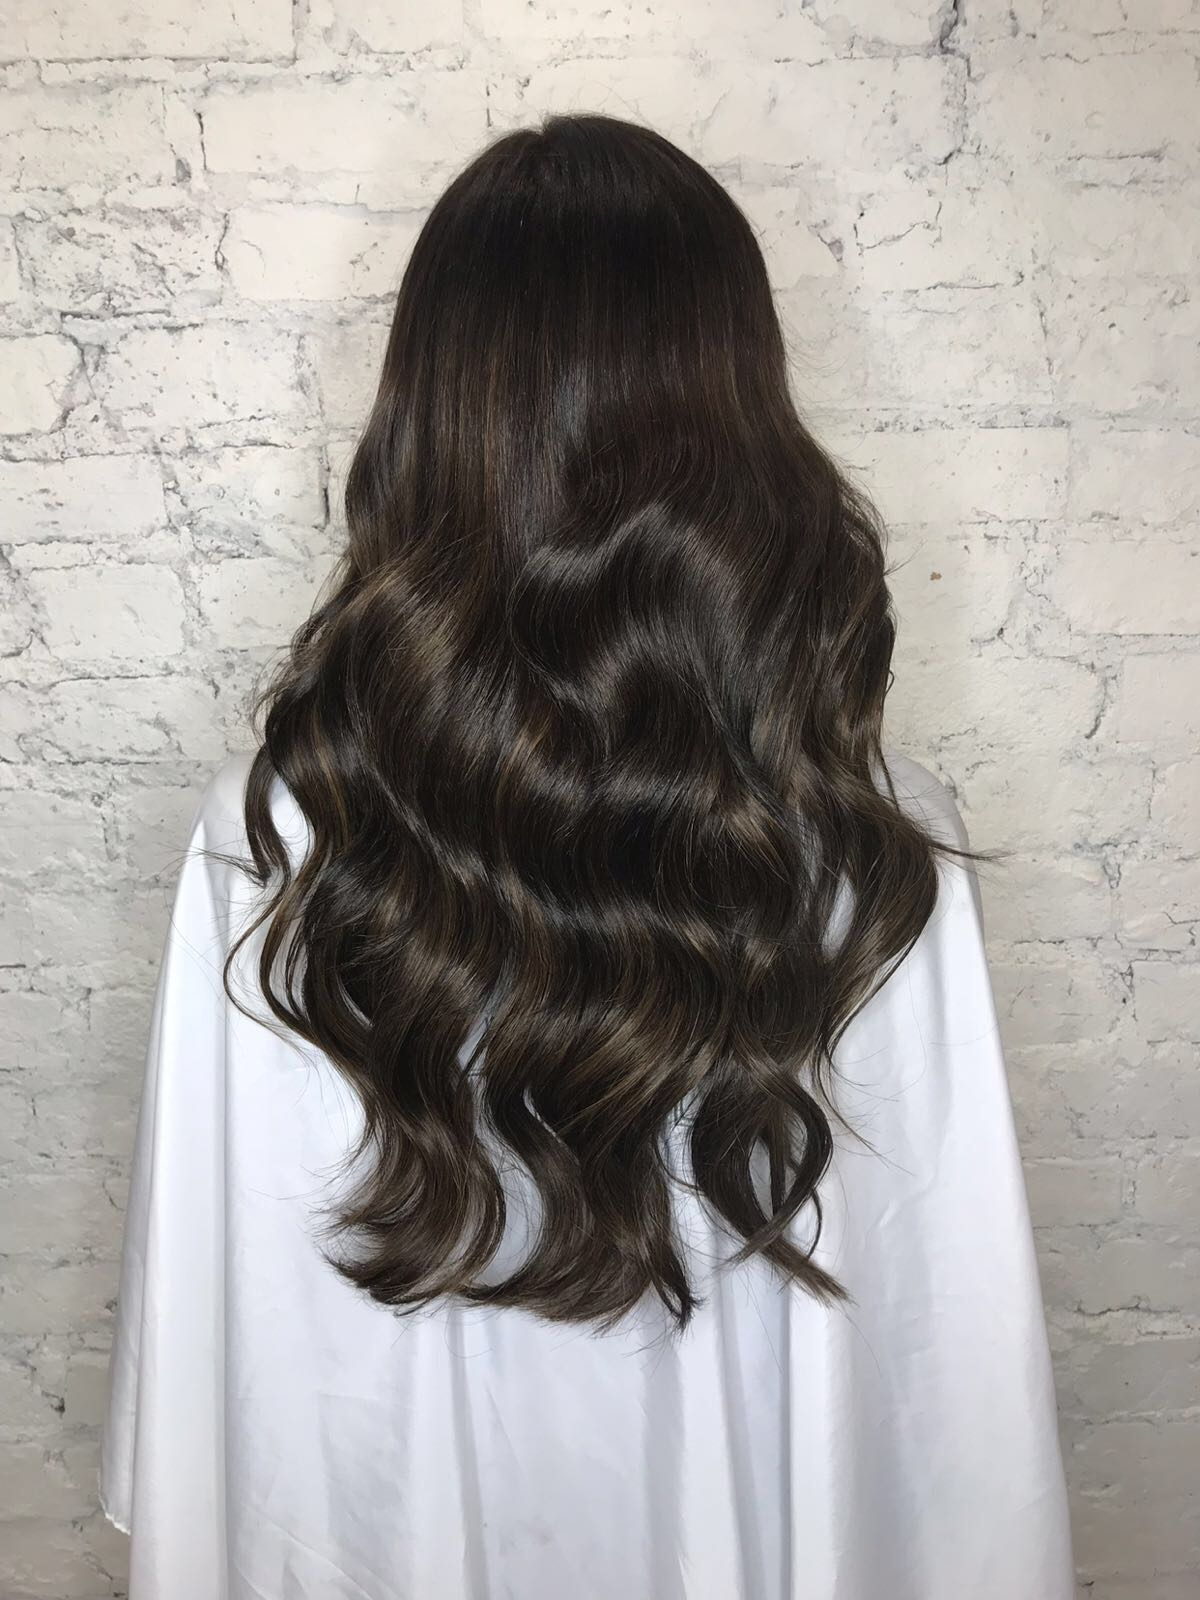 Hair Extensions At The Hive Salon Hive Salon